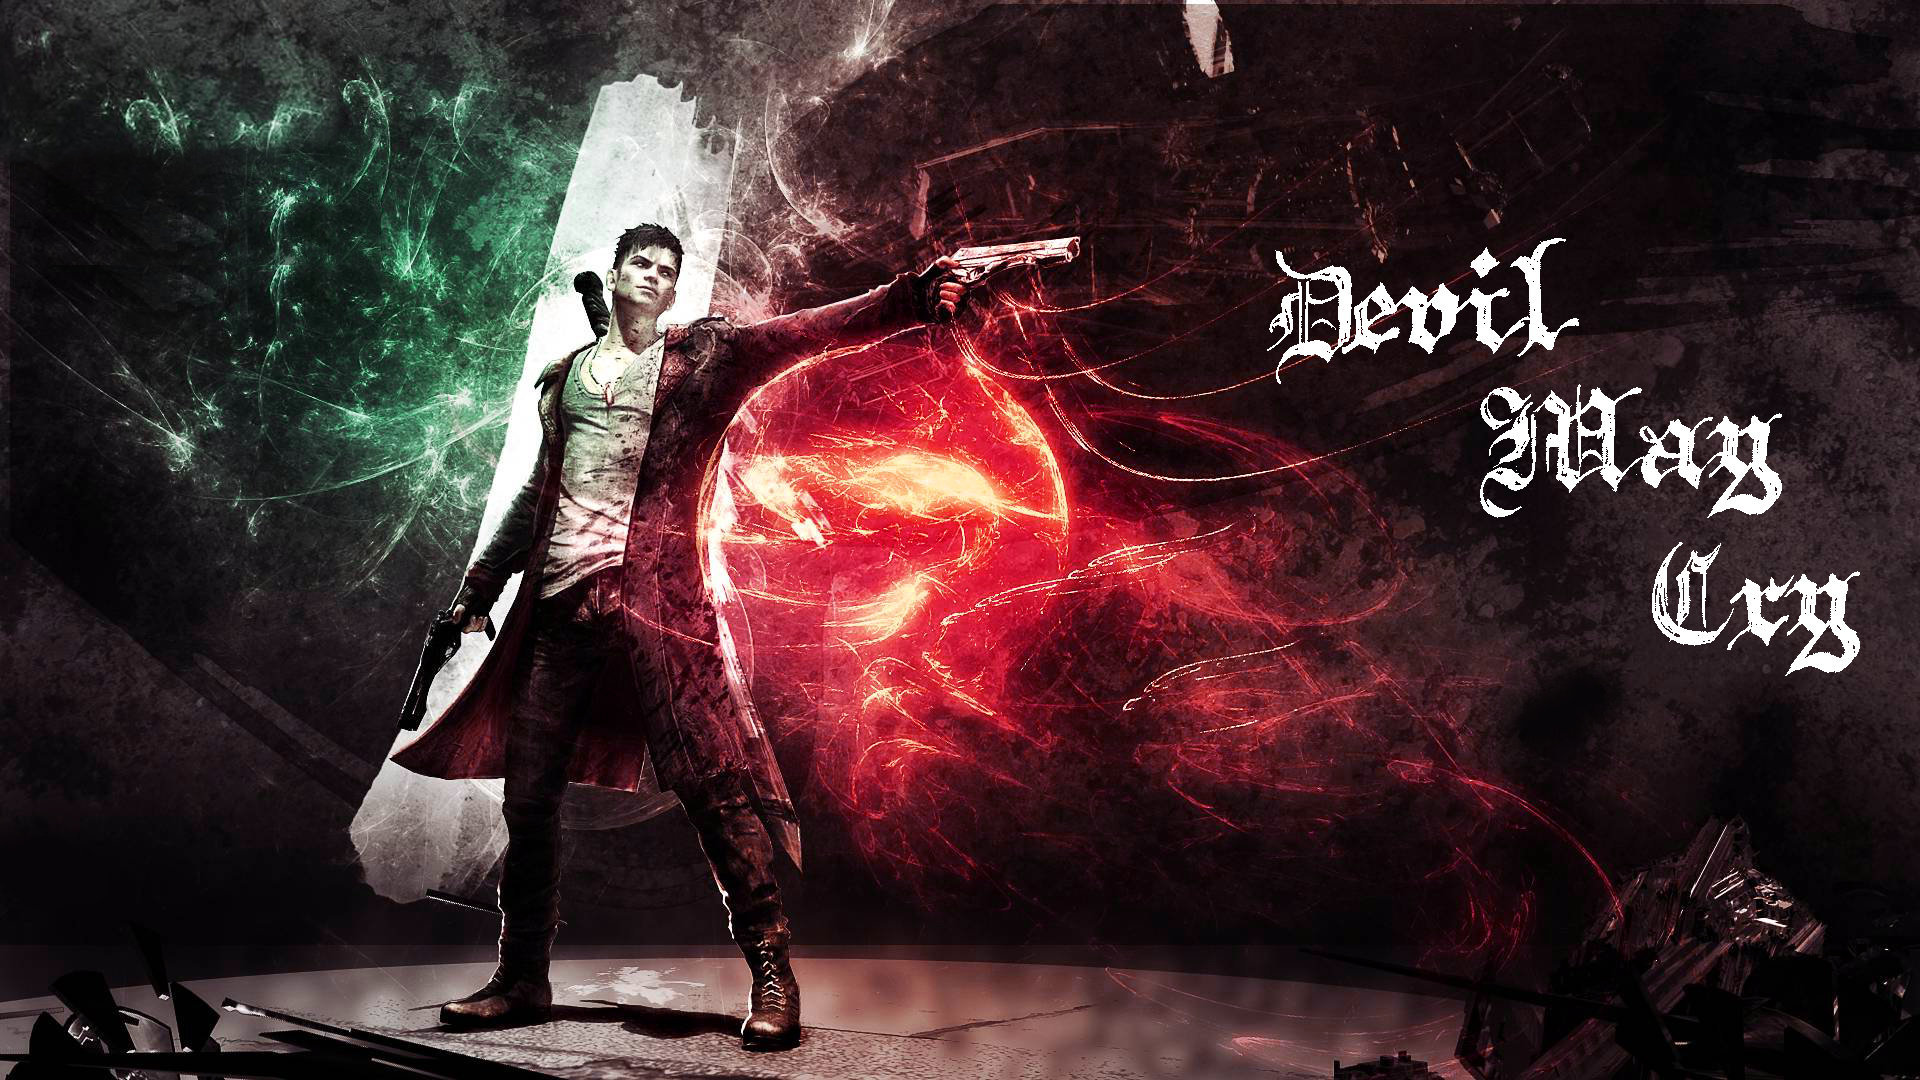 hd devil may cry wallpaper